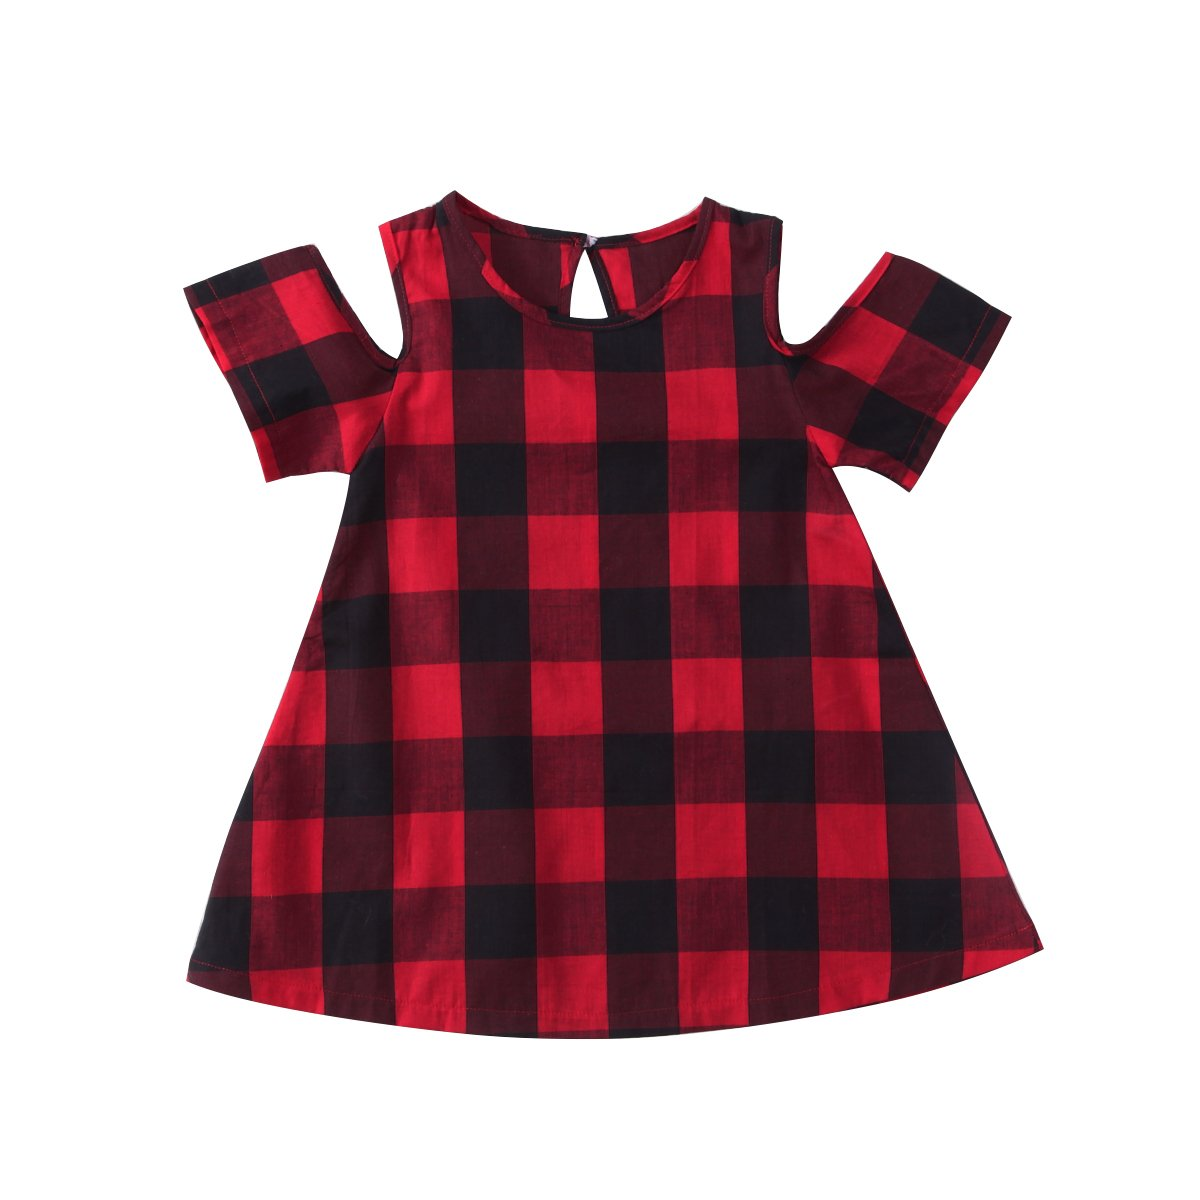 Enhill Kids Baby Toddler Girl Off Shoulder Plaids Checked Party Princess Dresses